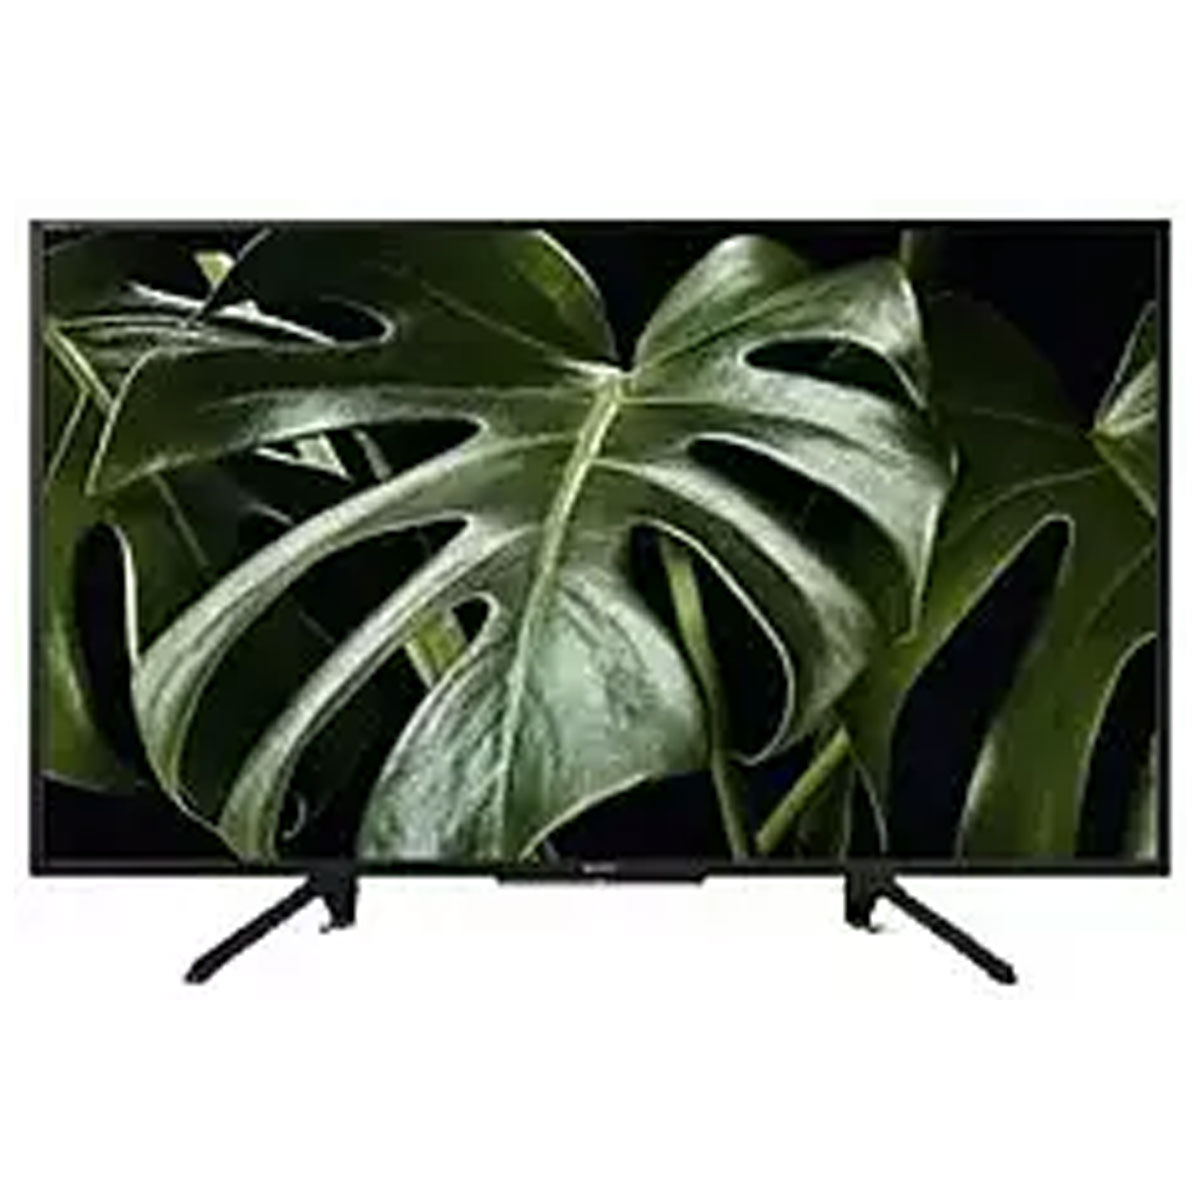 Sony Bravia 43 Inch FHD Smart LED TV (KDL43W800G)